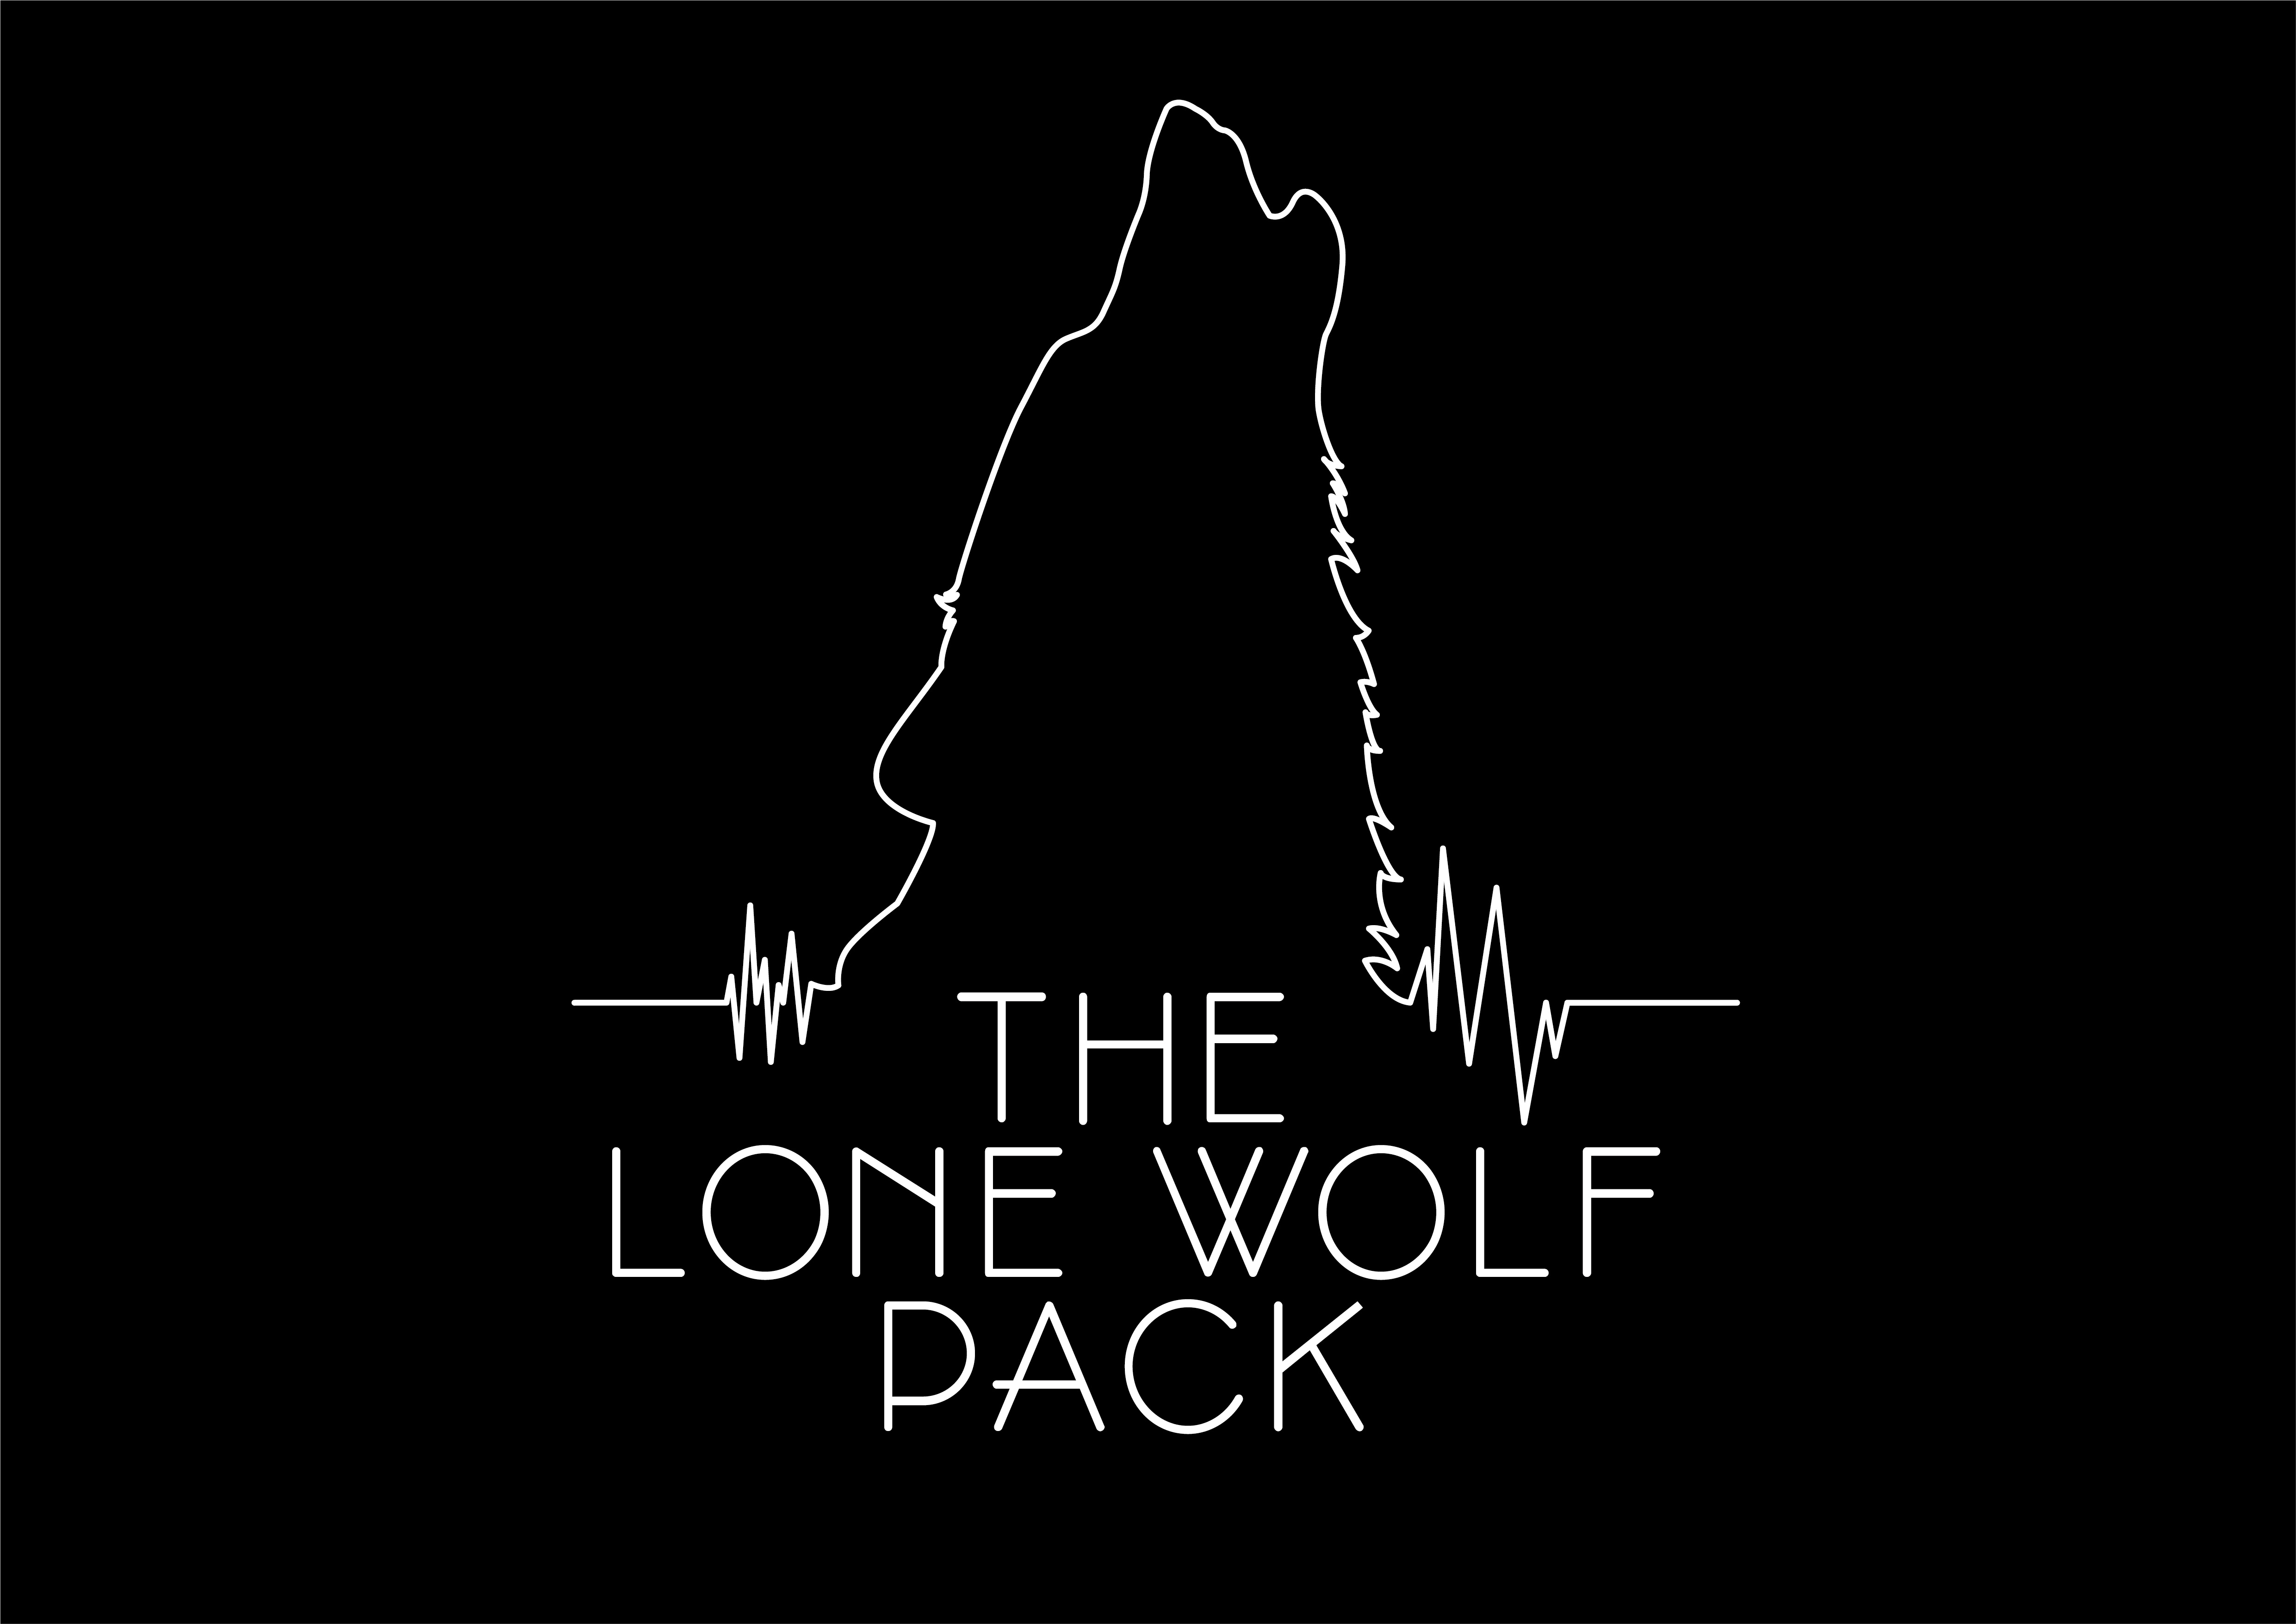 The Lone Wolf Pack